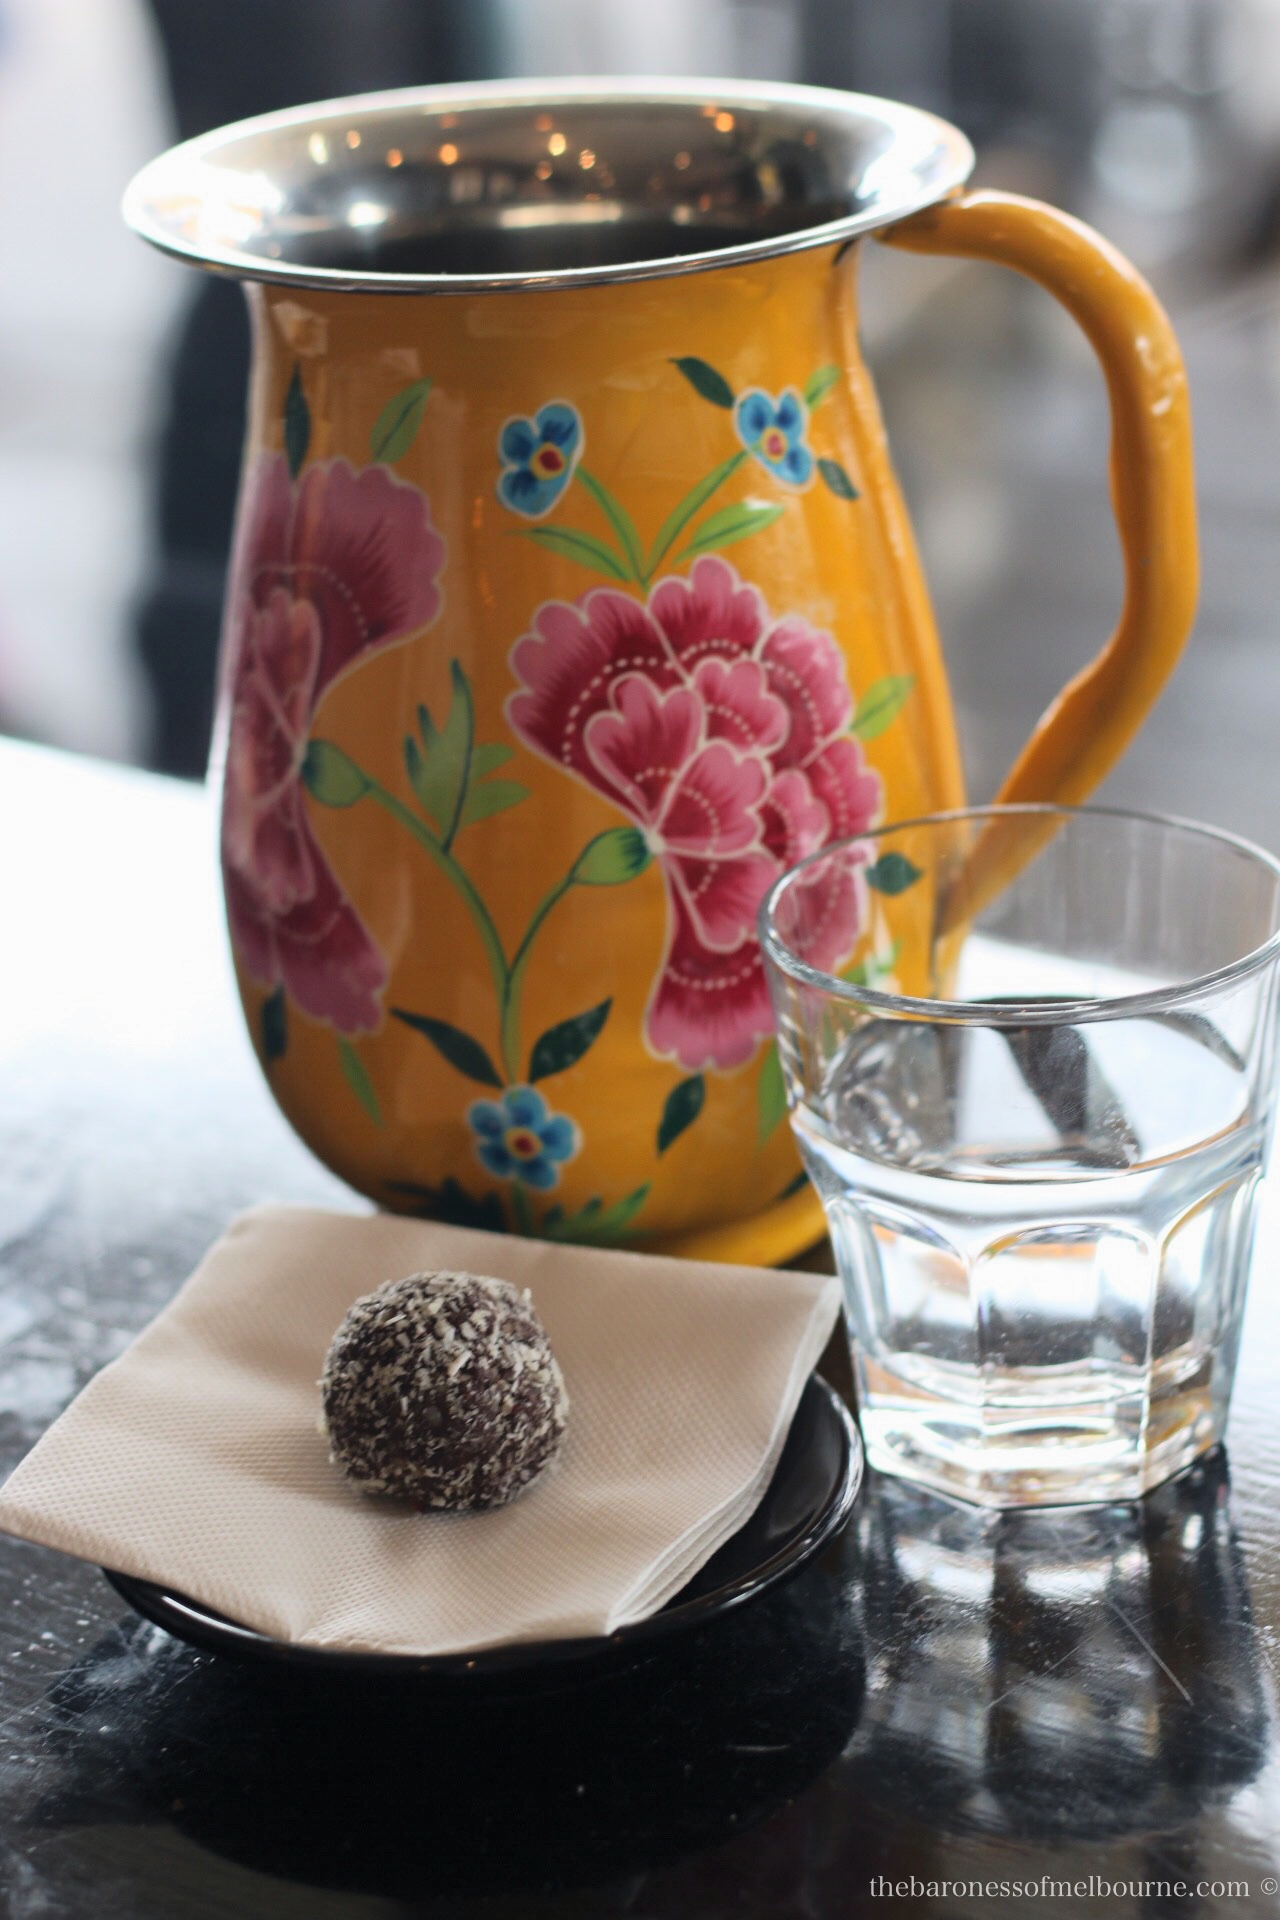 Such a pretty water jug and a very good goji berry protein ball